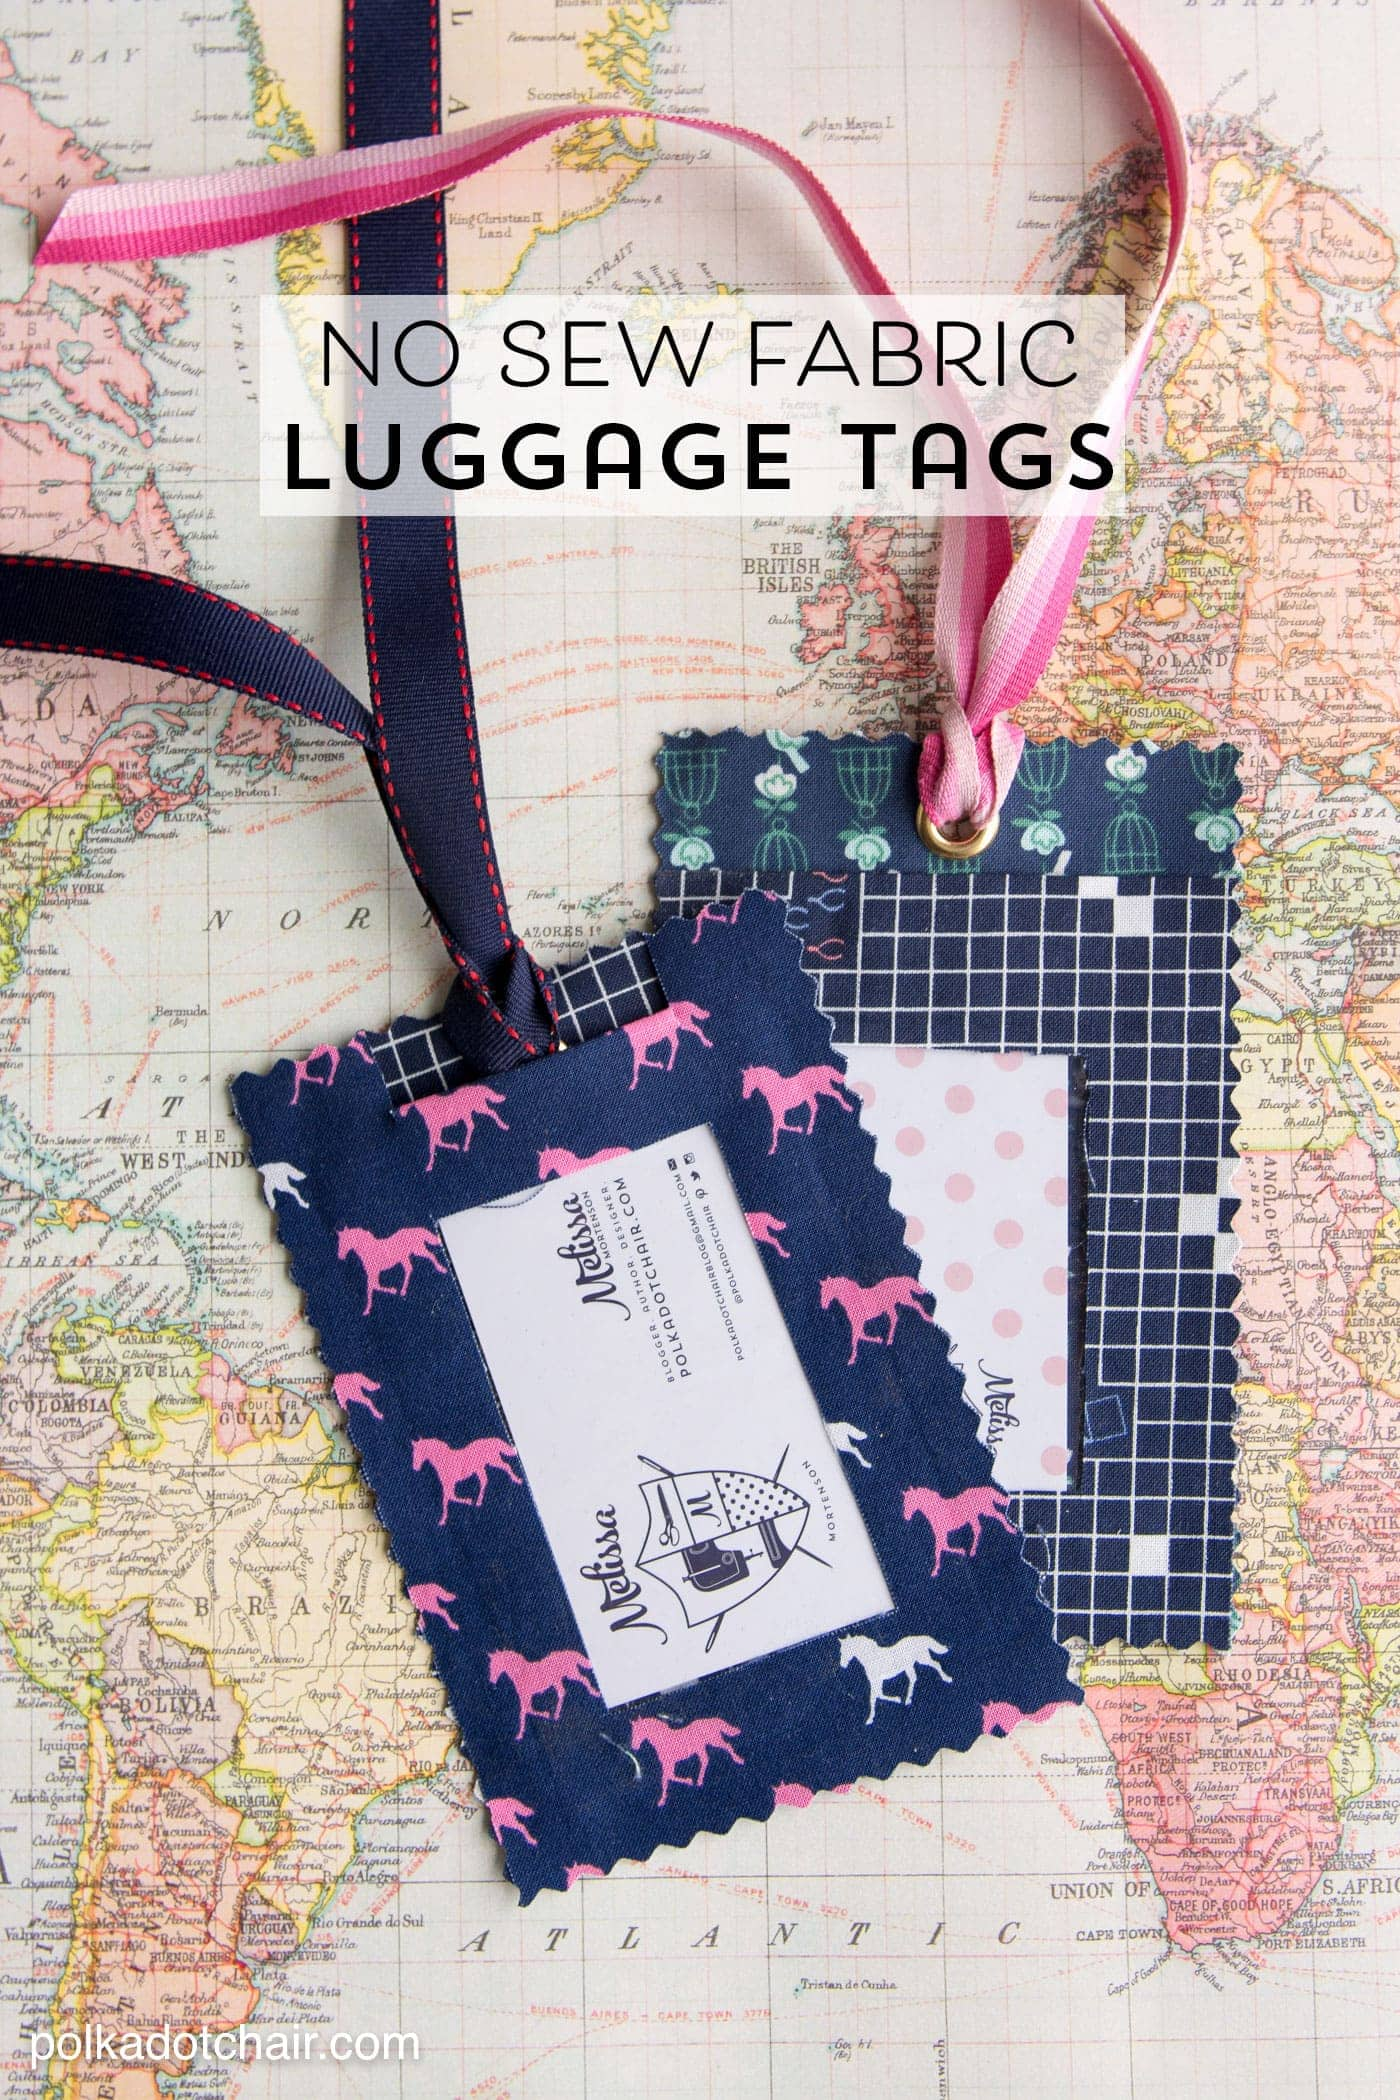 3 Easy Diy Storage Ideas For Small Kitchen: DIY Fabric Luggage Tags - No Sew!